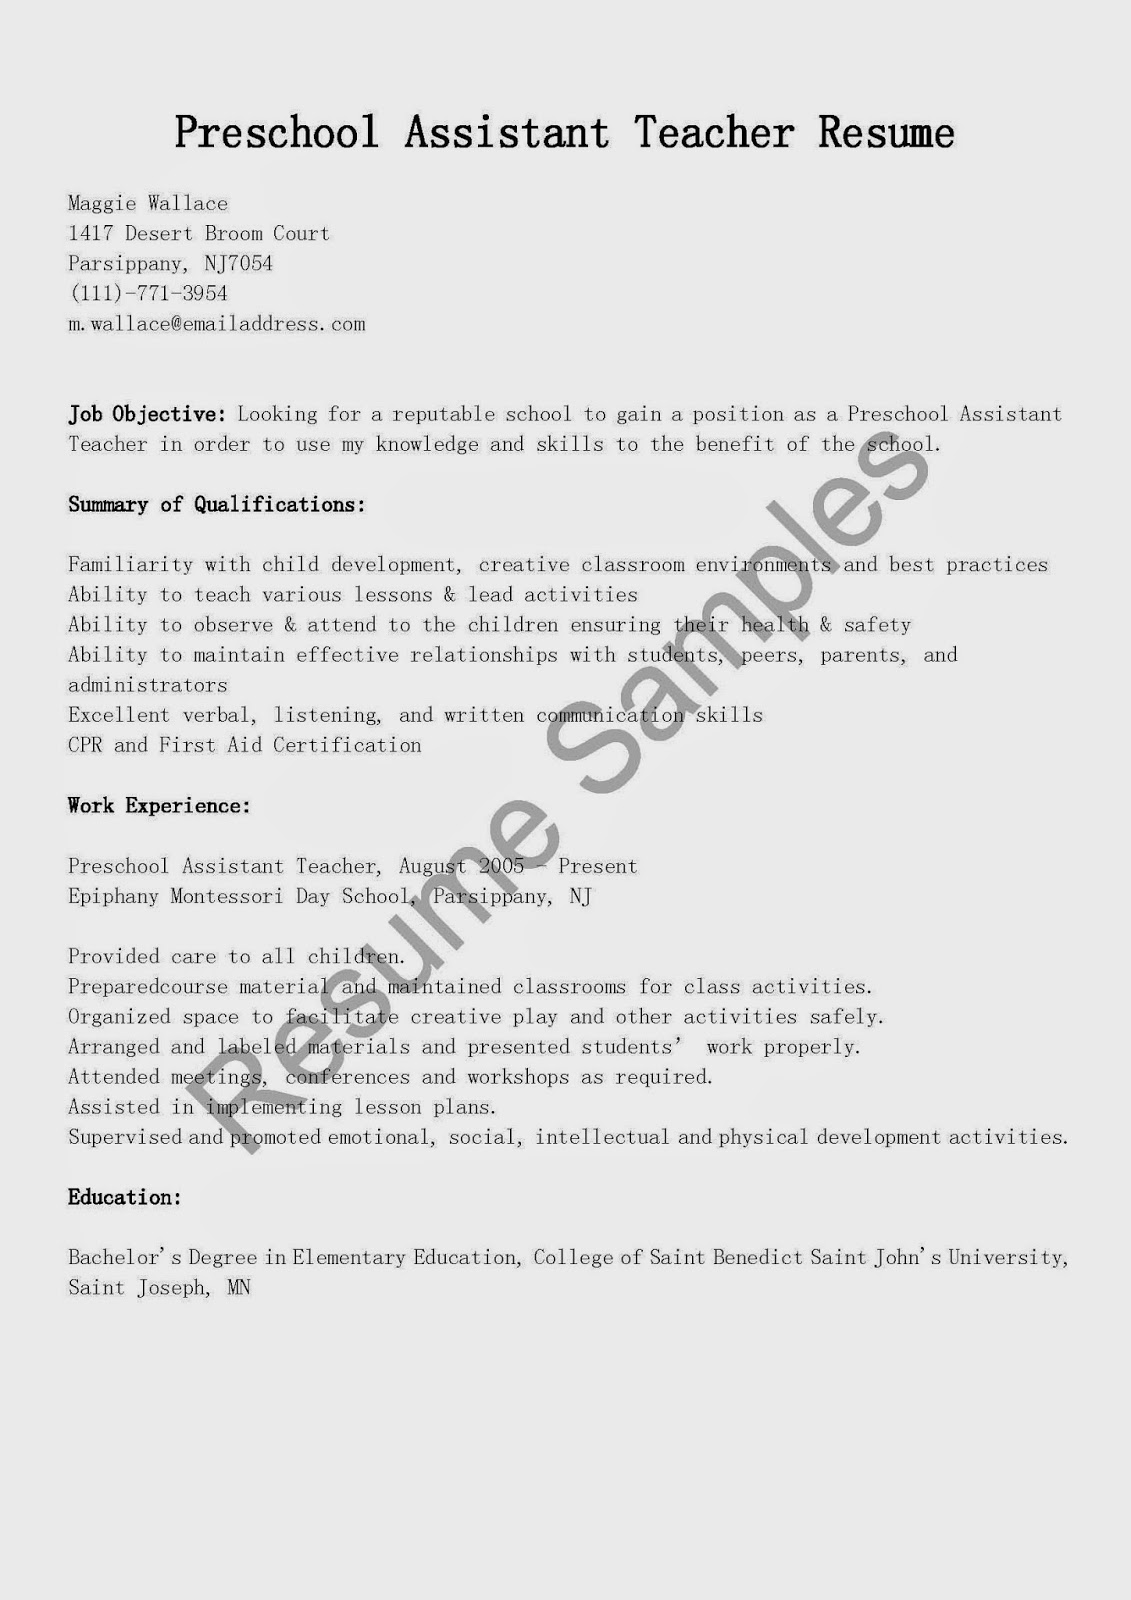 resume samples  preschool head teacher resume sample